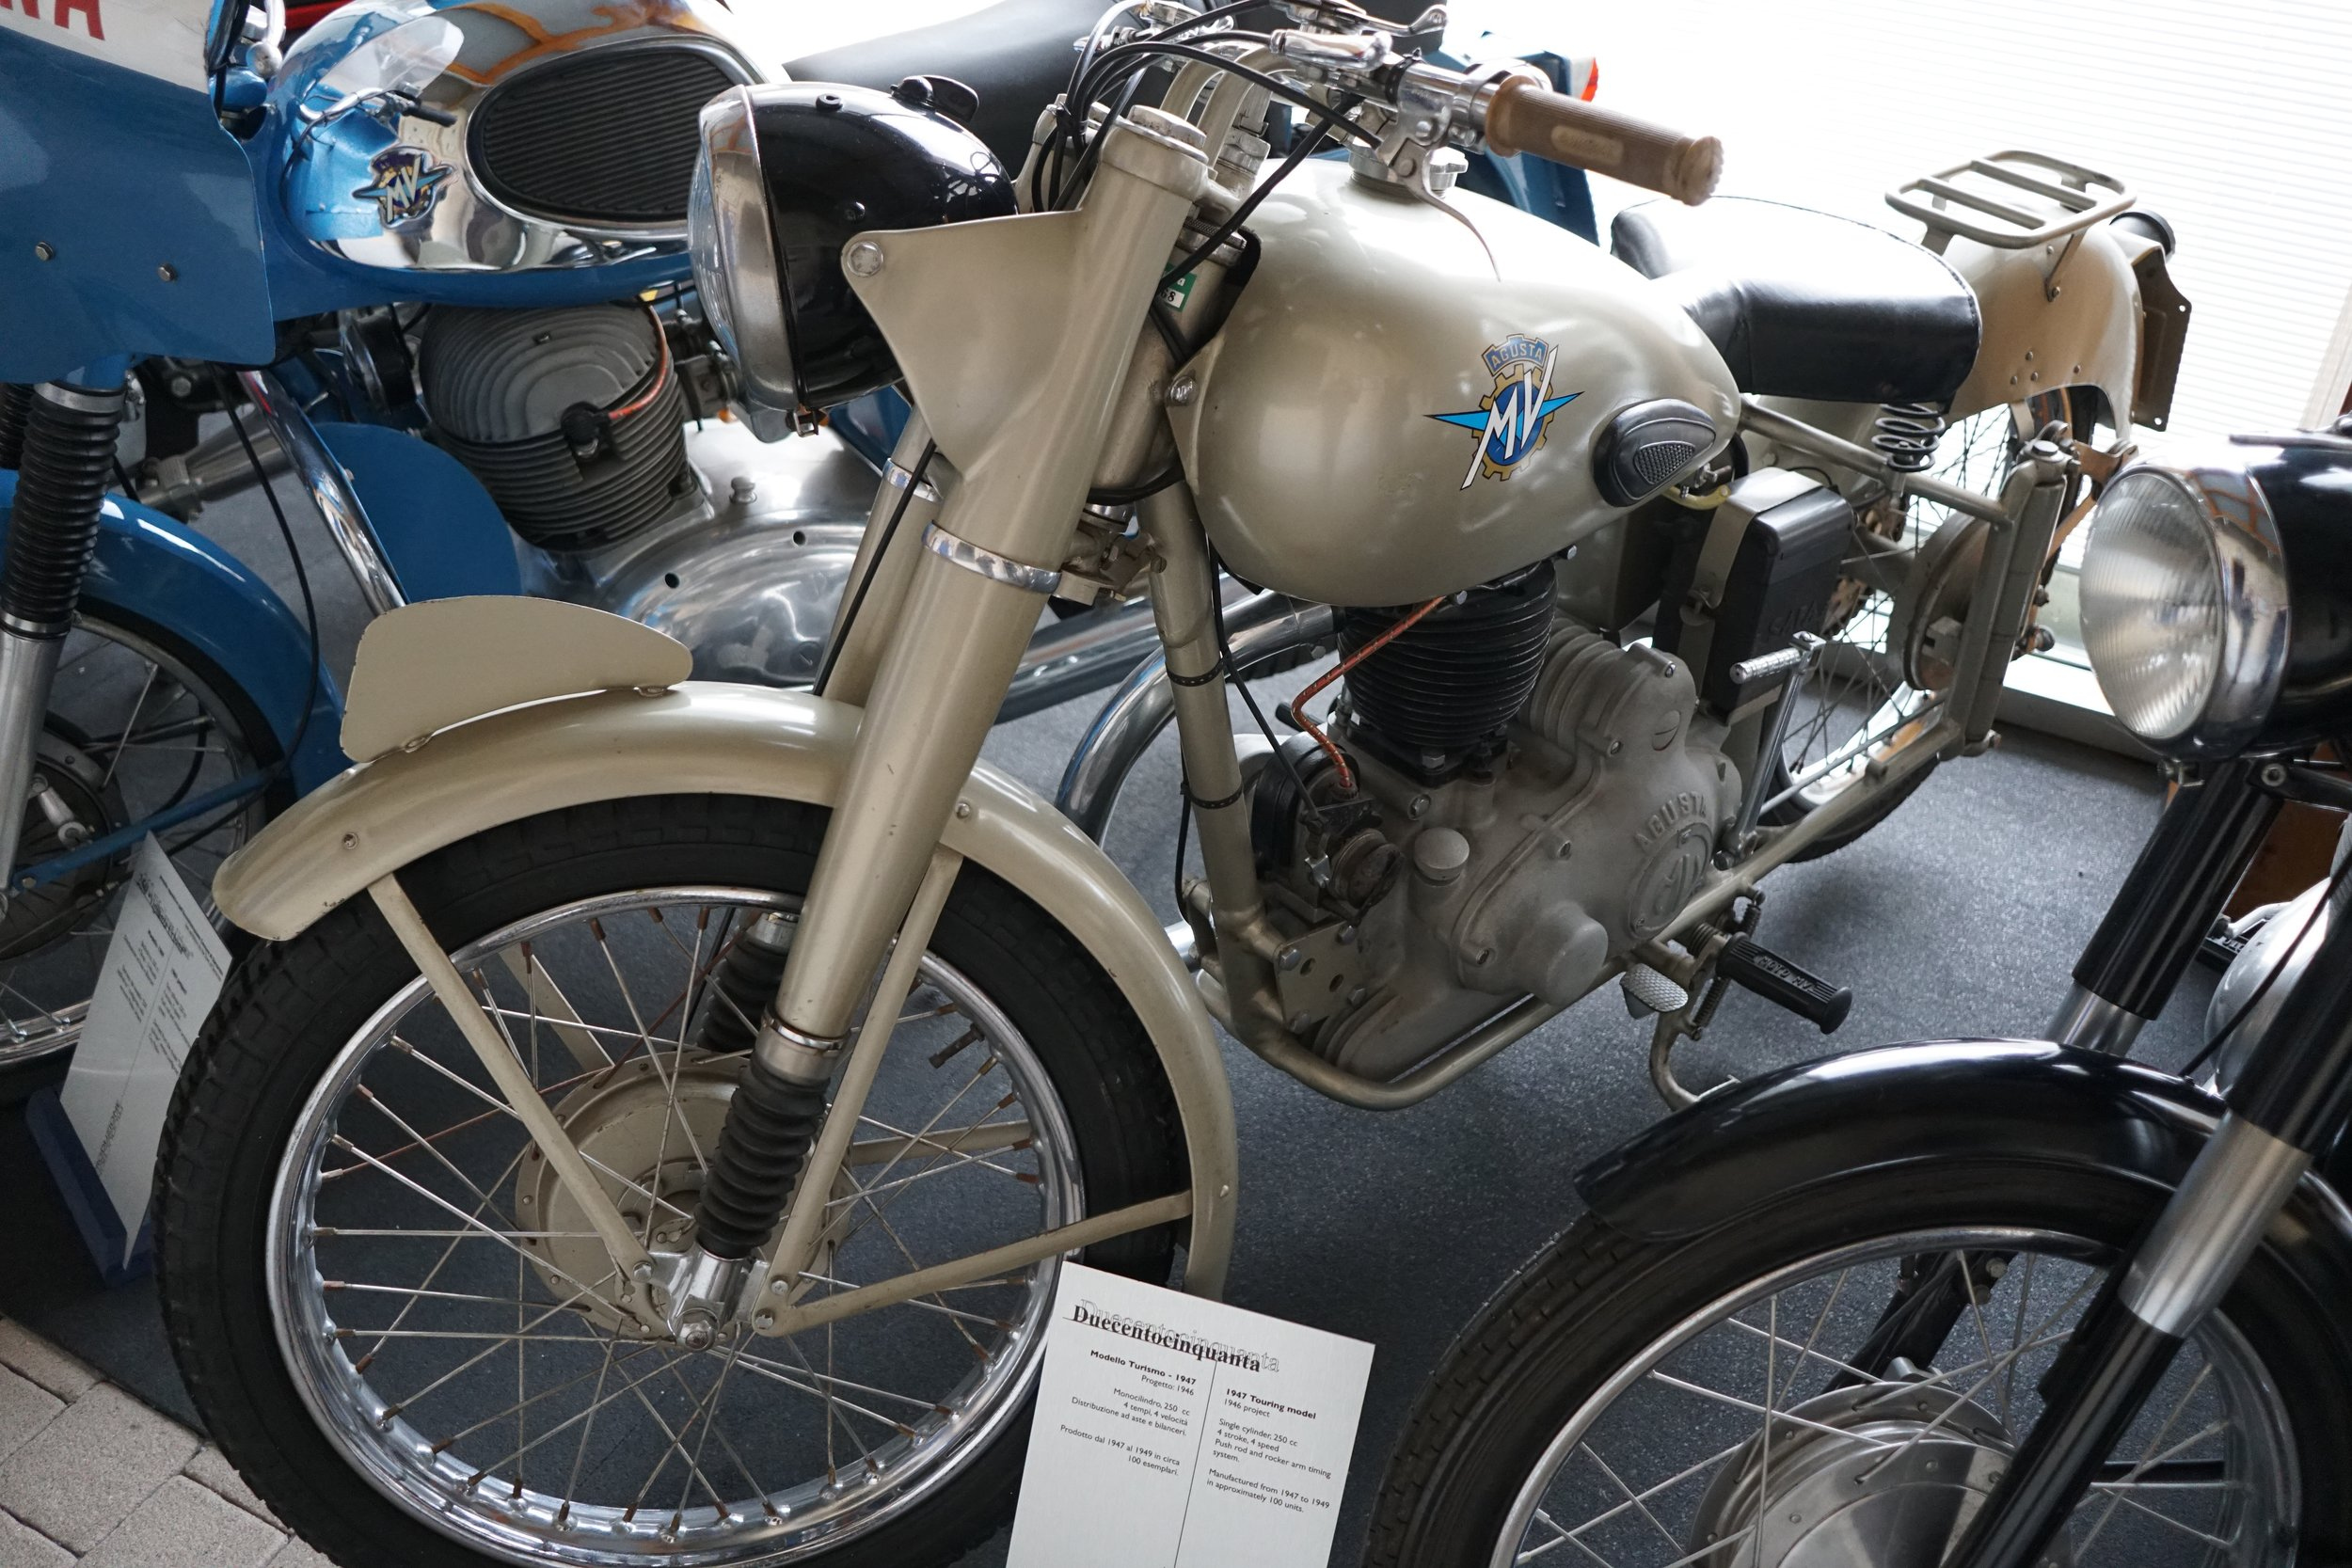 '47 Duecentocinquanta – This 250cc pushrod single had an unimpressive production run of about 100 units in the late '40s.